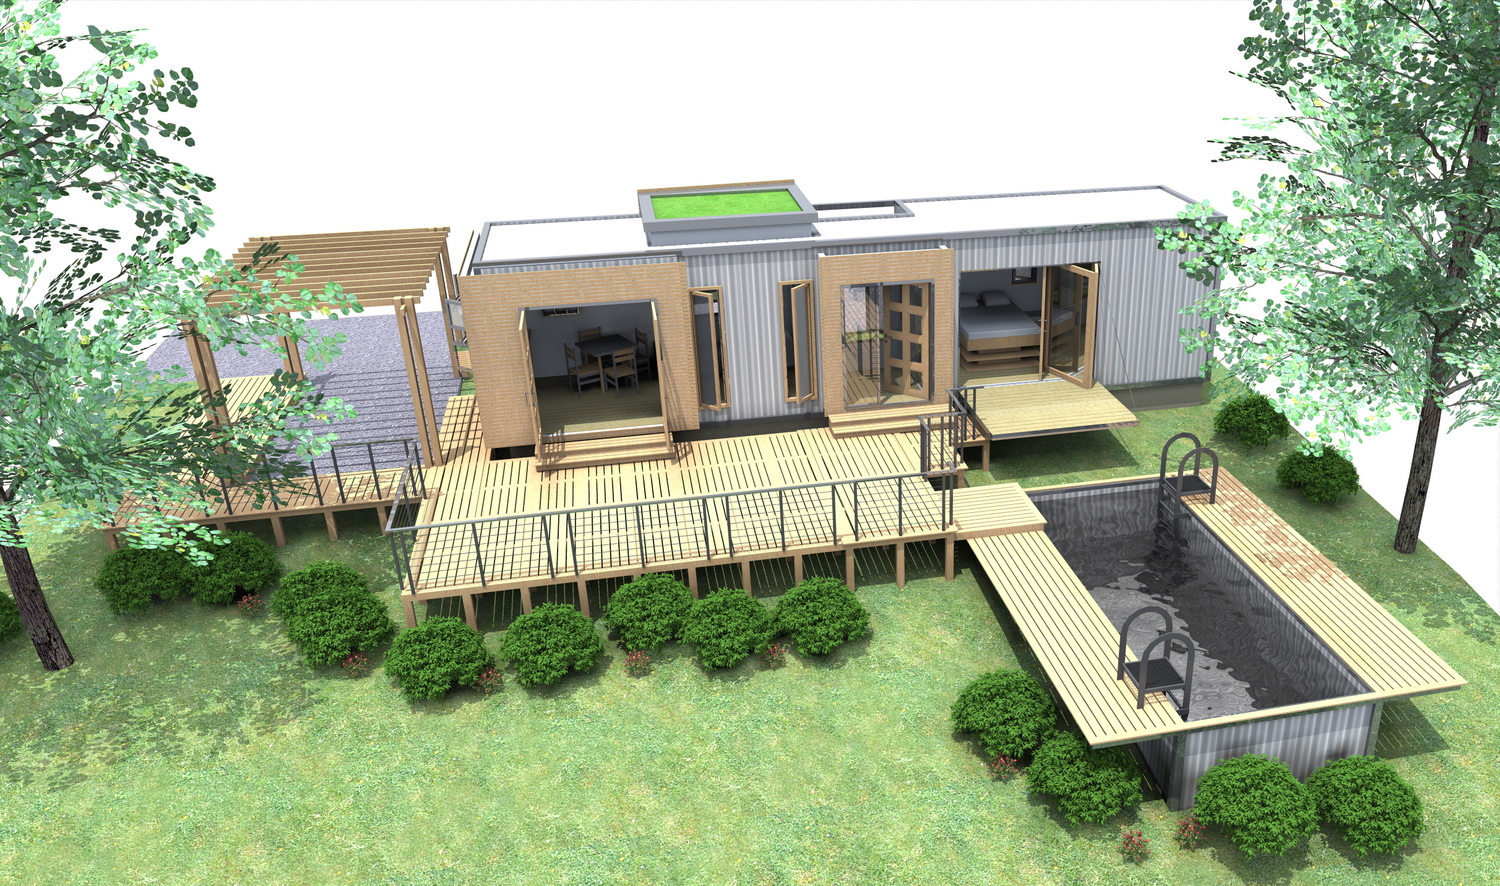 Shipping Container Homes: 40ft Shipping Container Home,   Eco Pig Designs,  SCH 1,   Devon, UK,